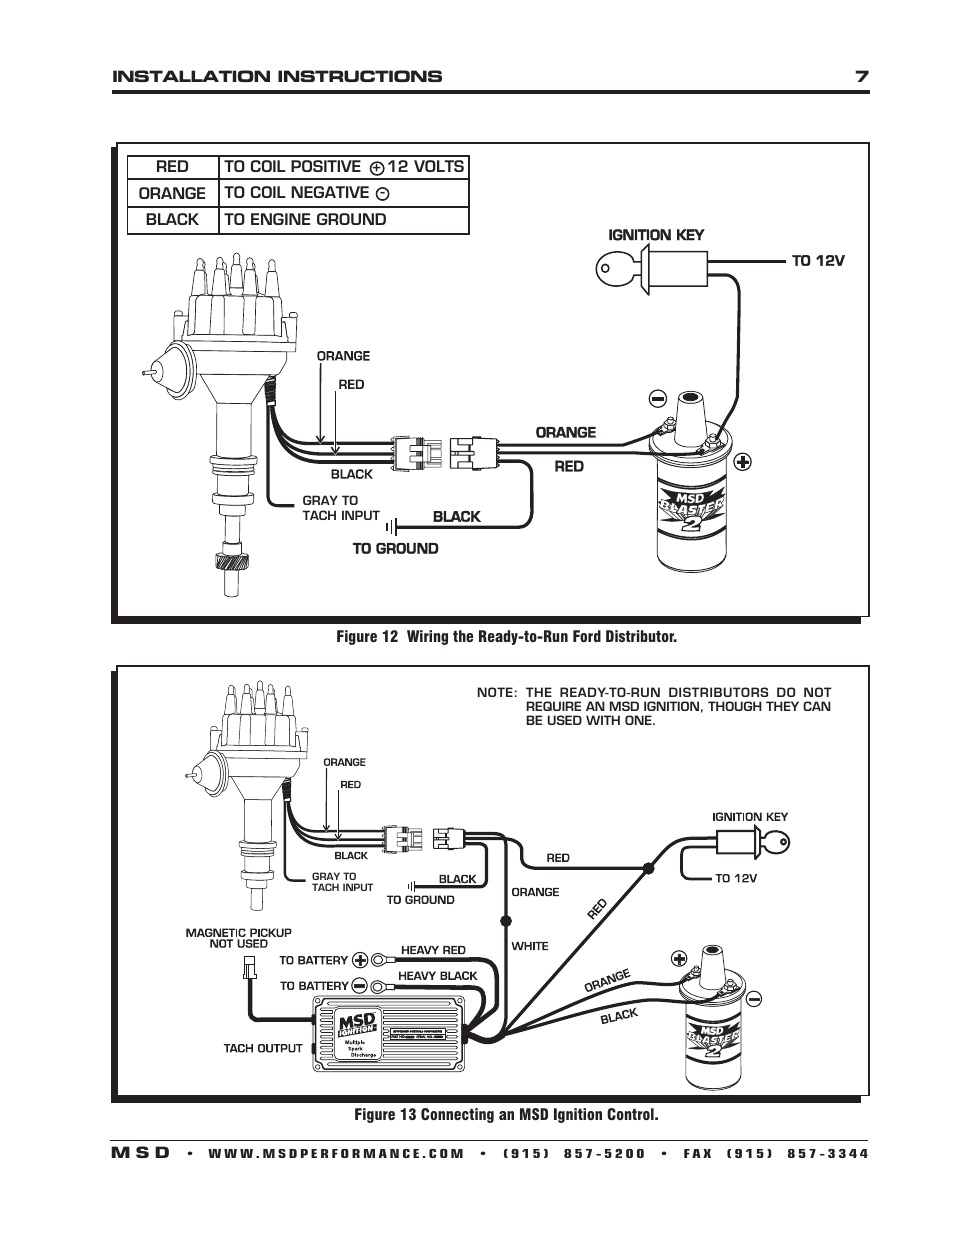 ford 460 distributor wiring diagram mitsubishi fuso diagrams blog data msd ready to run best library ignition module schematic